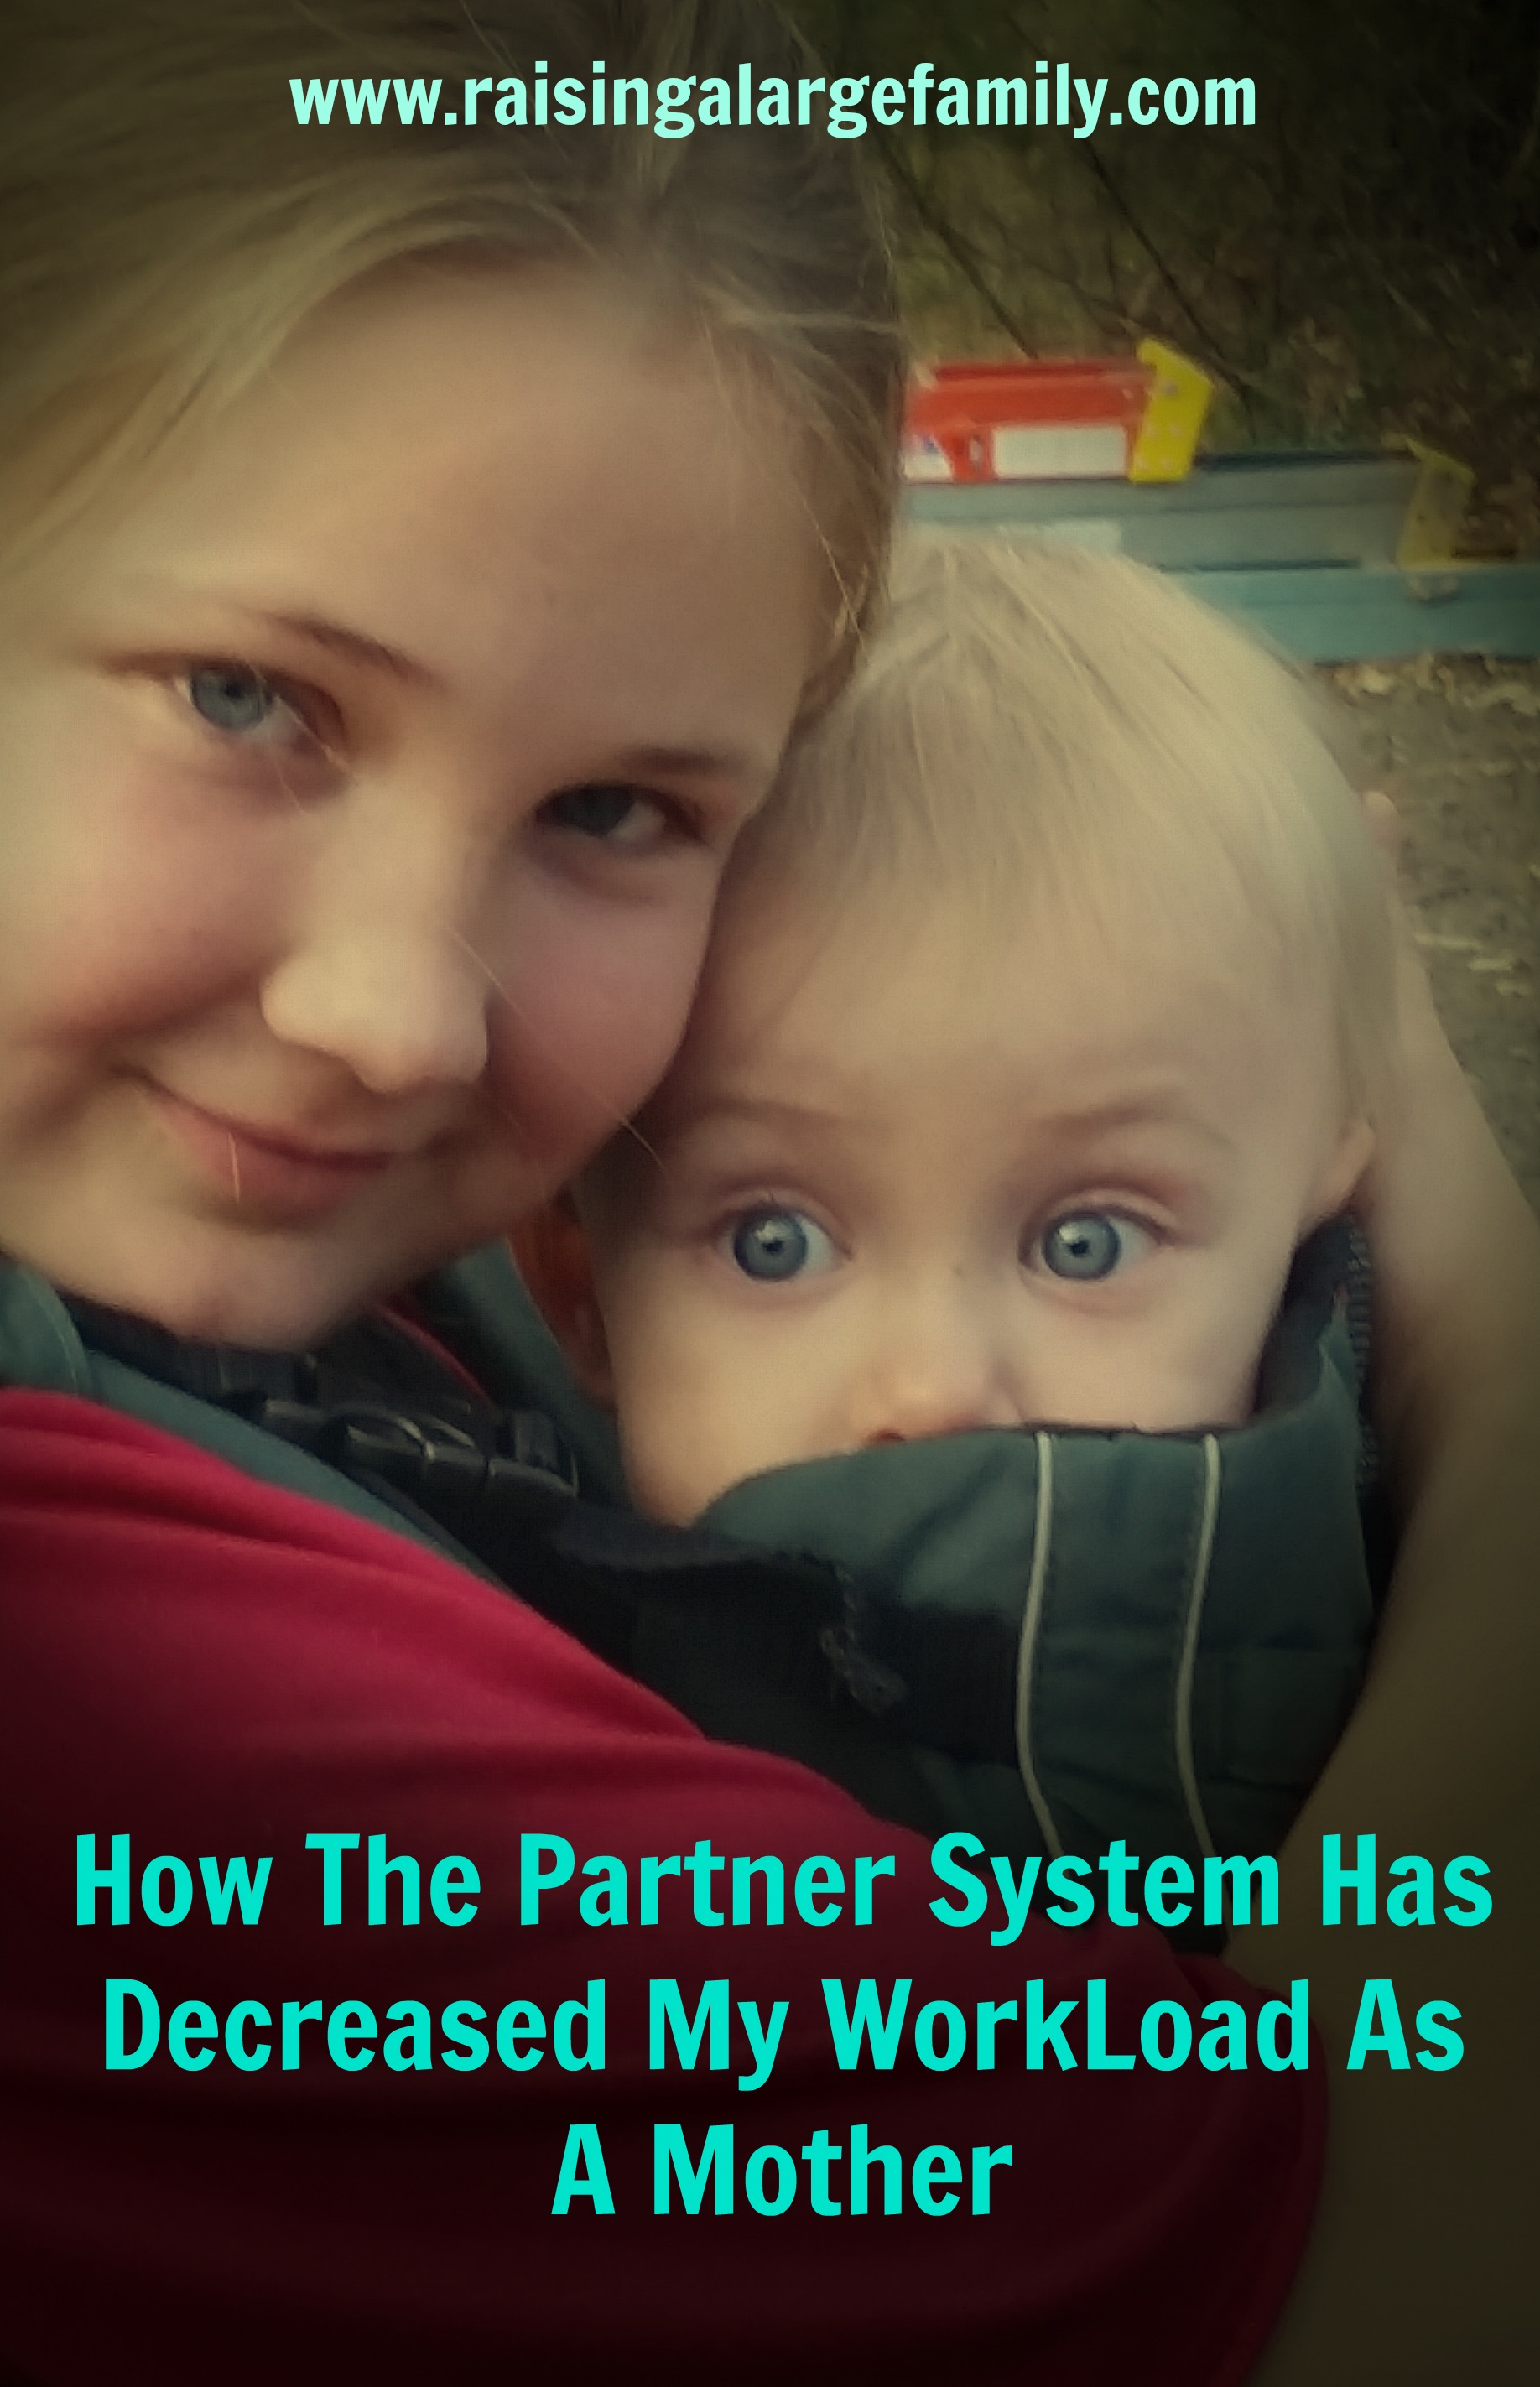 How The Partner System Has Reduced My Work Load